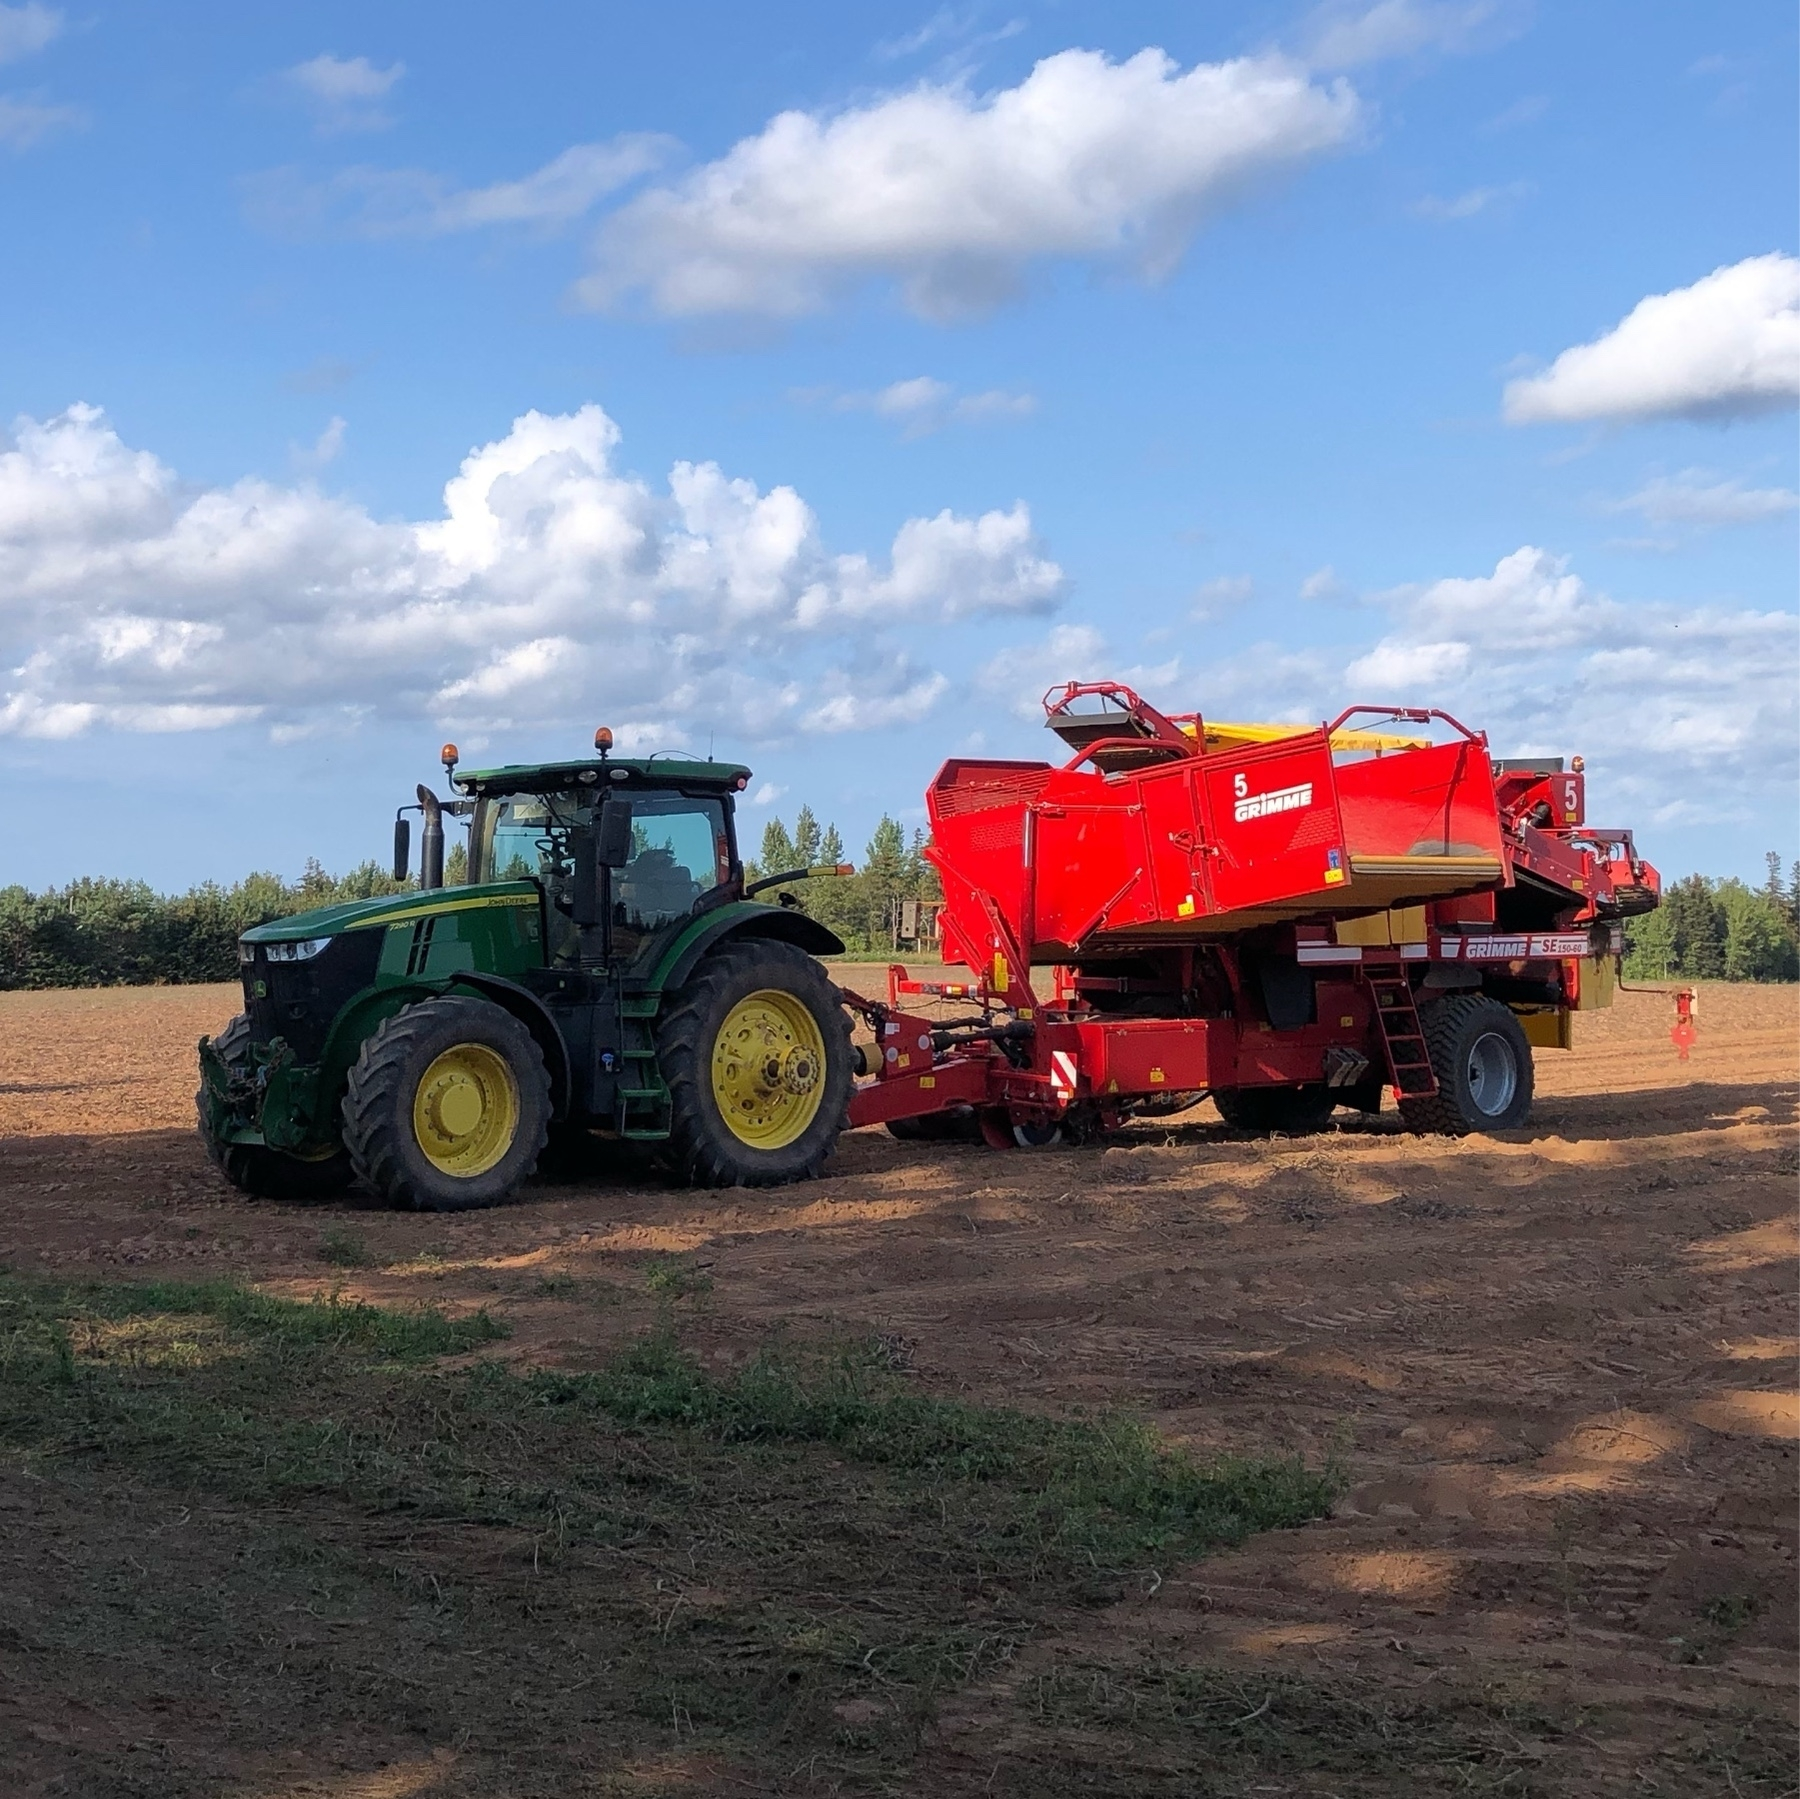 a large tractor pulling a red implement. they are in a field lf red soil. a few clouds in the sky